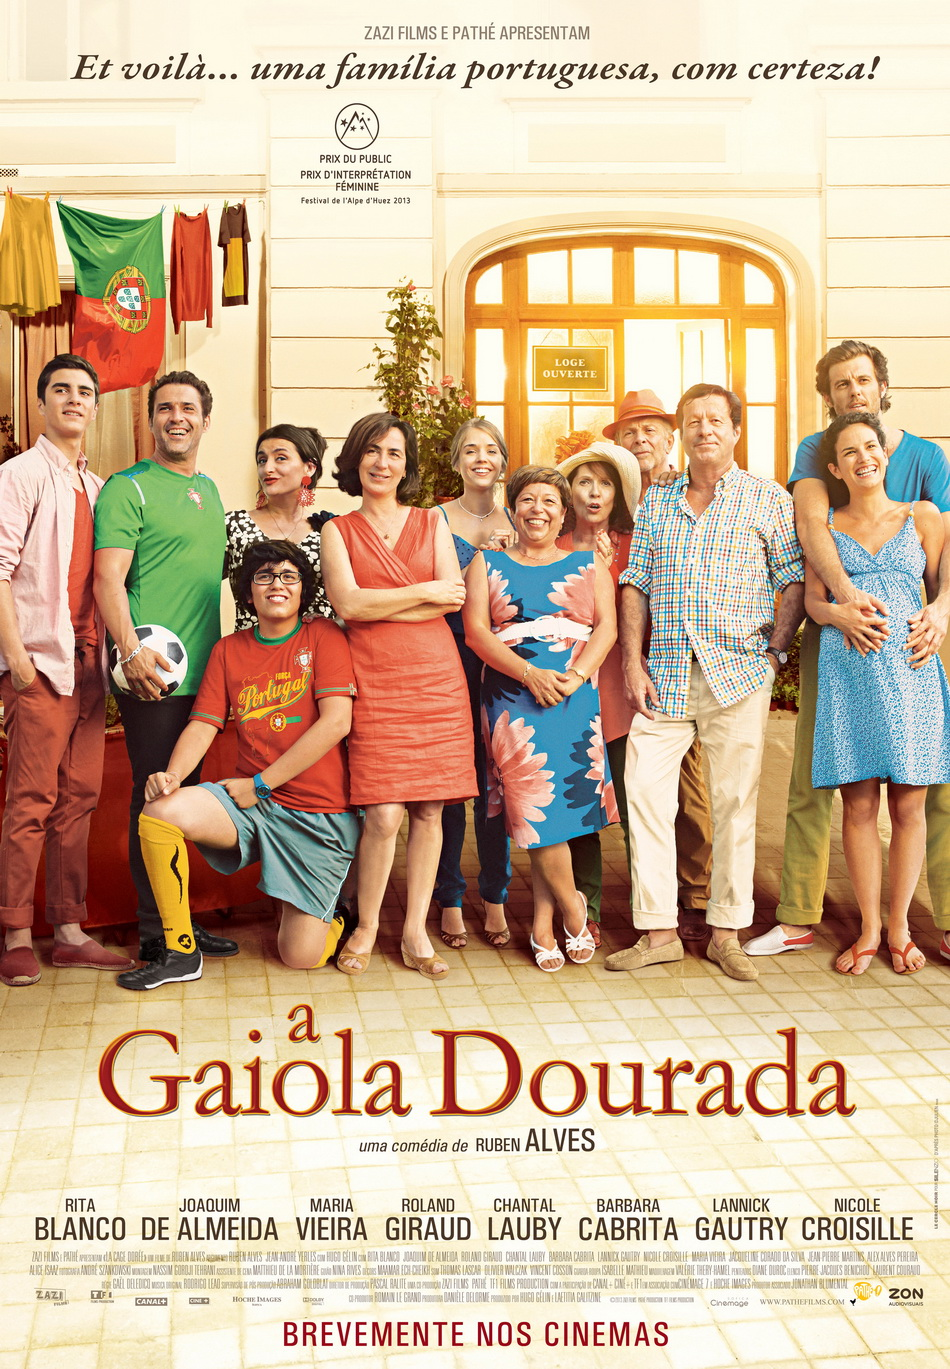 4th Film in Portuguese Cinema Cycle - A gaiola dourada